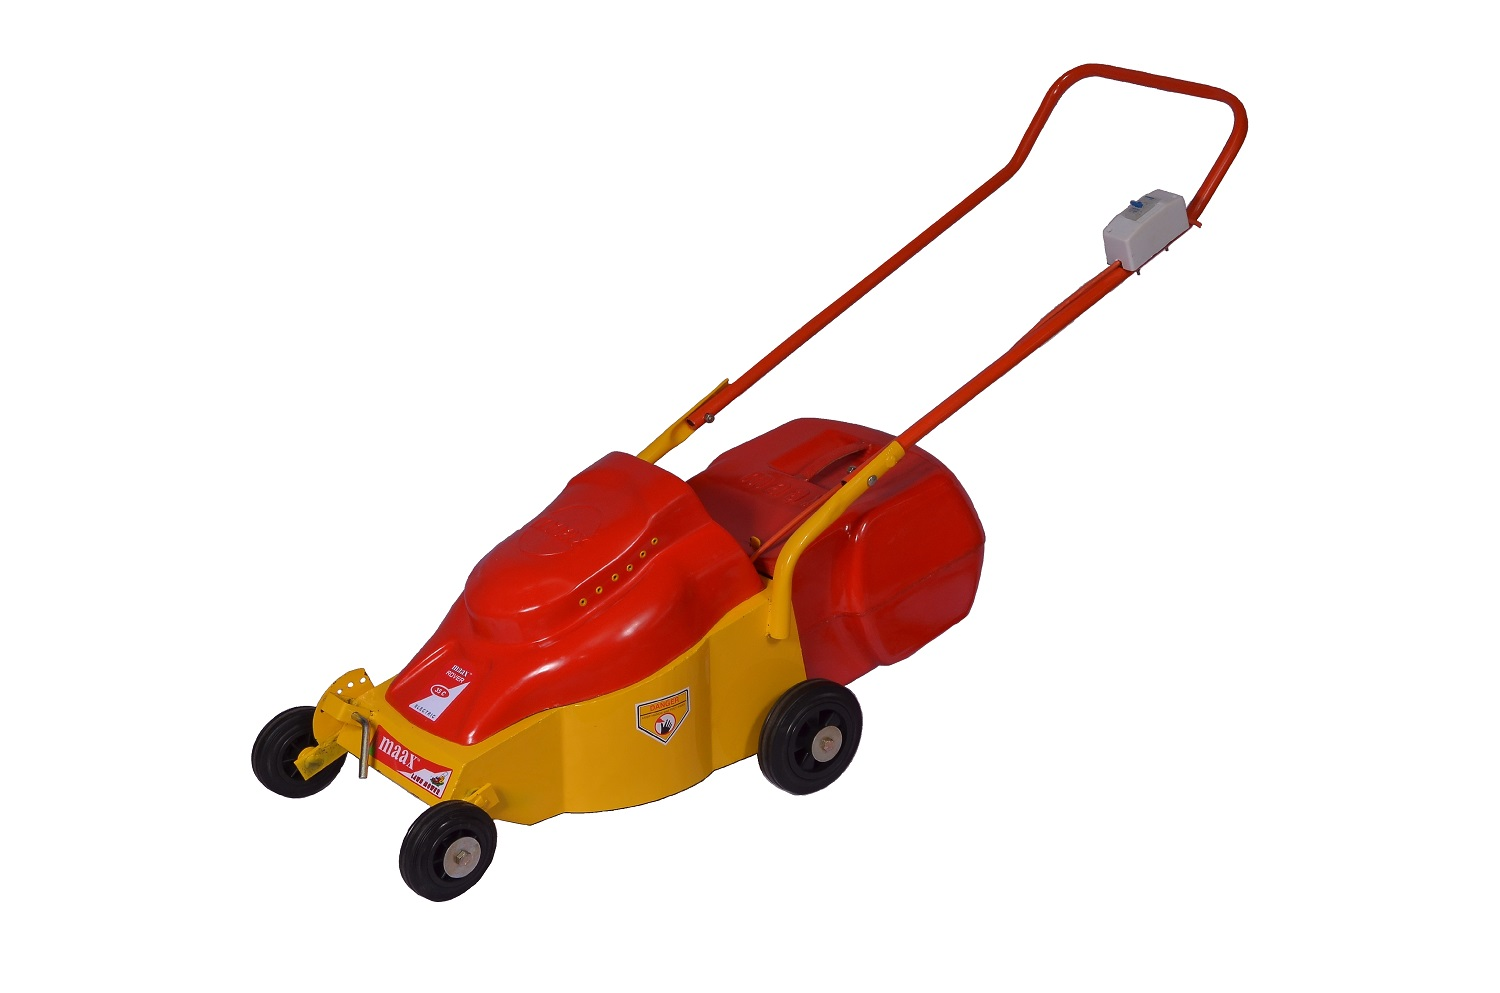 ELECTRIC LAWN MOWER - ROVER 35C